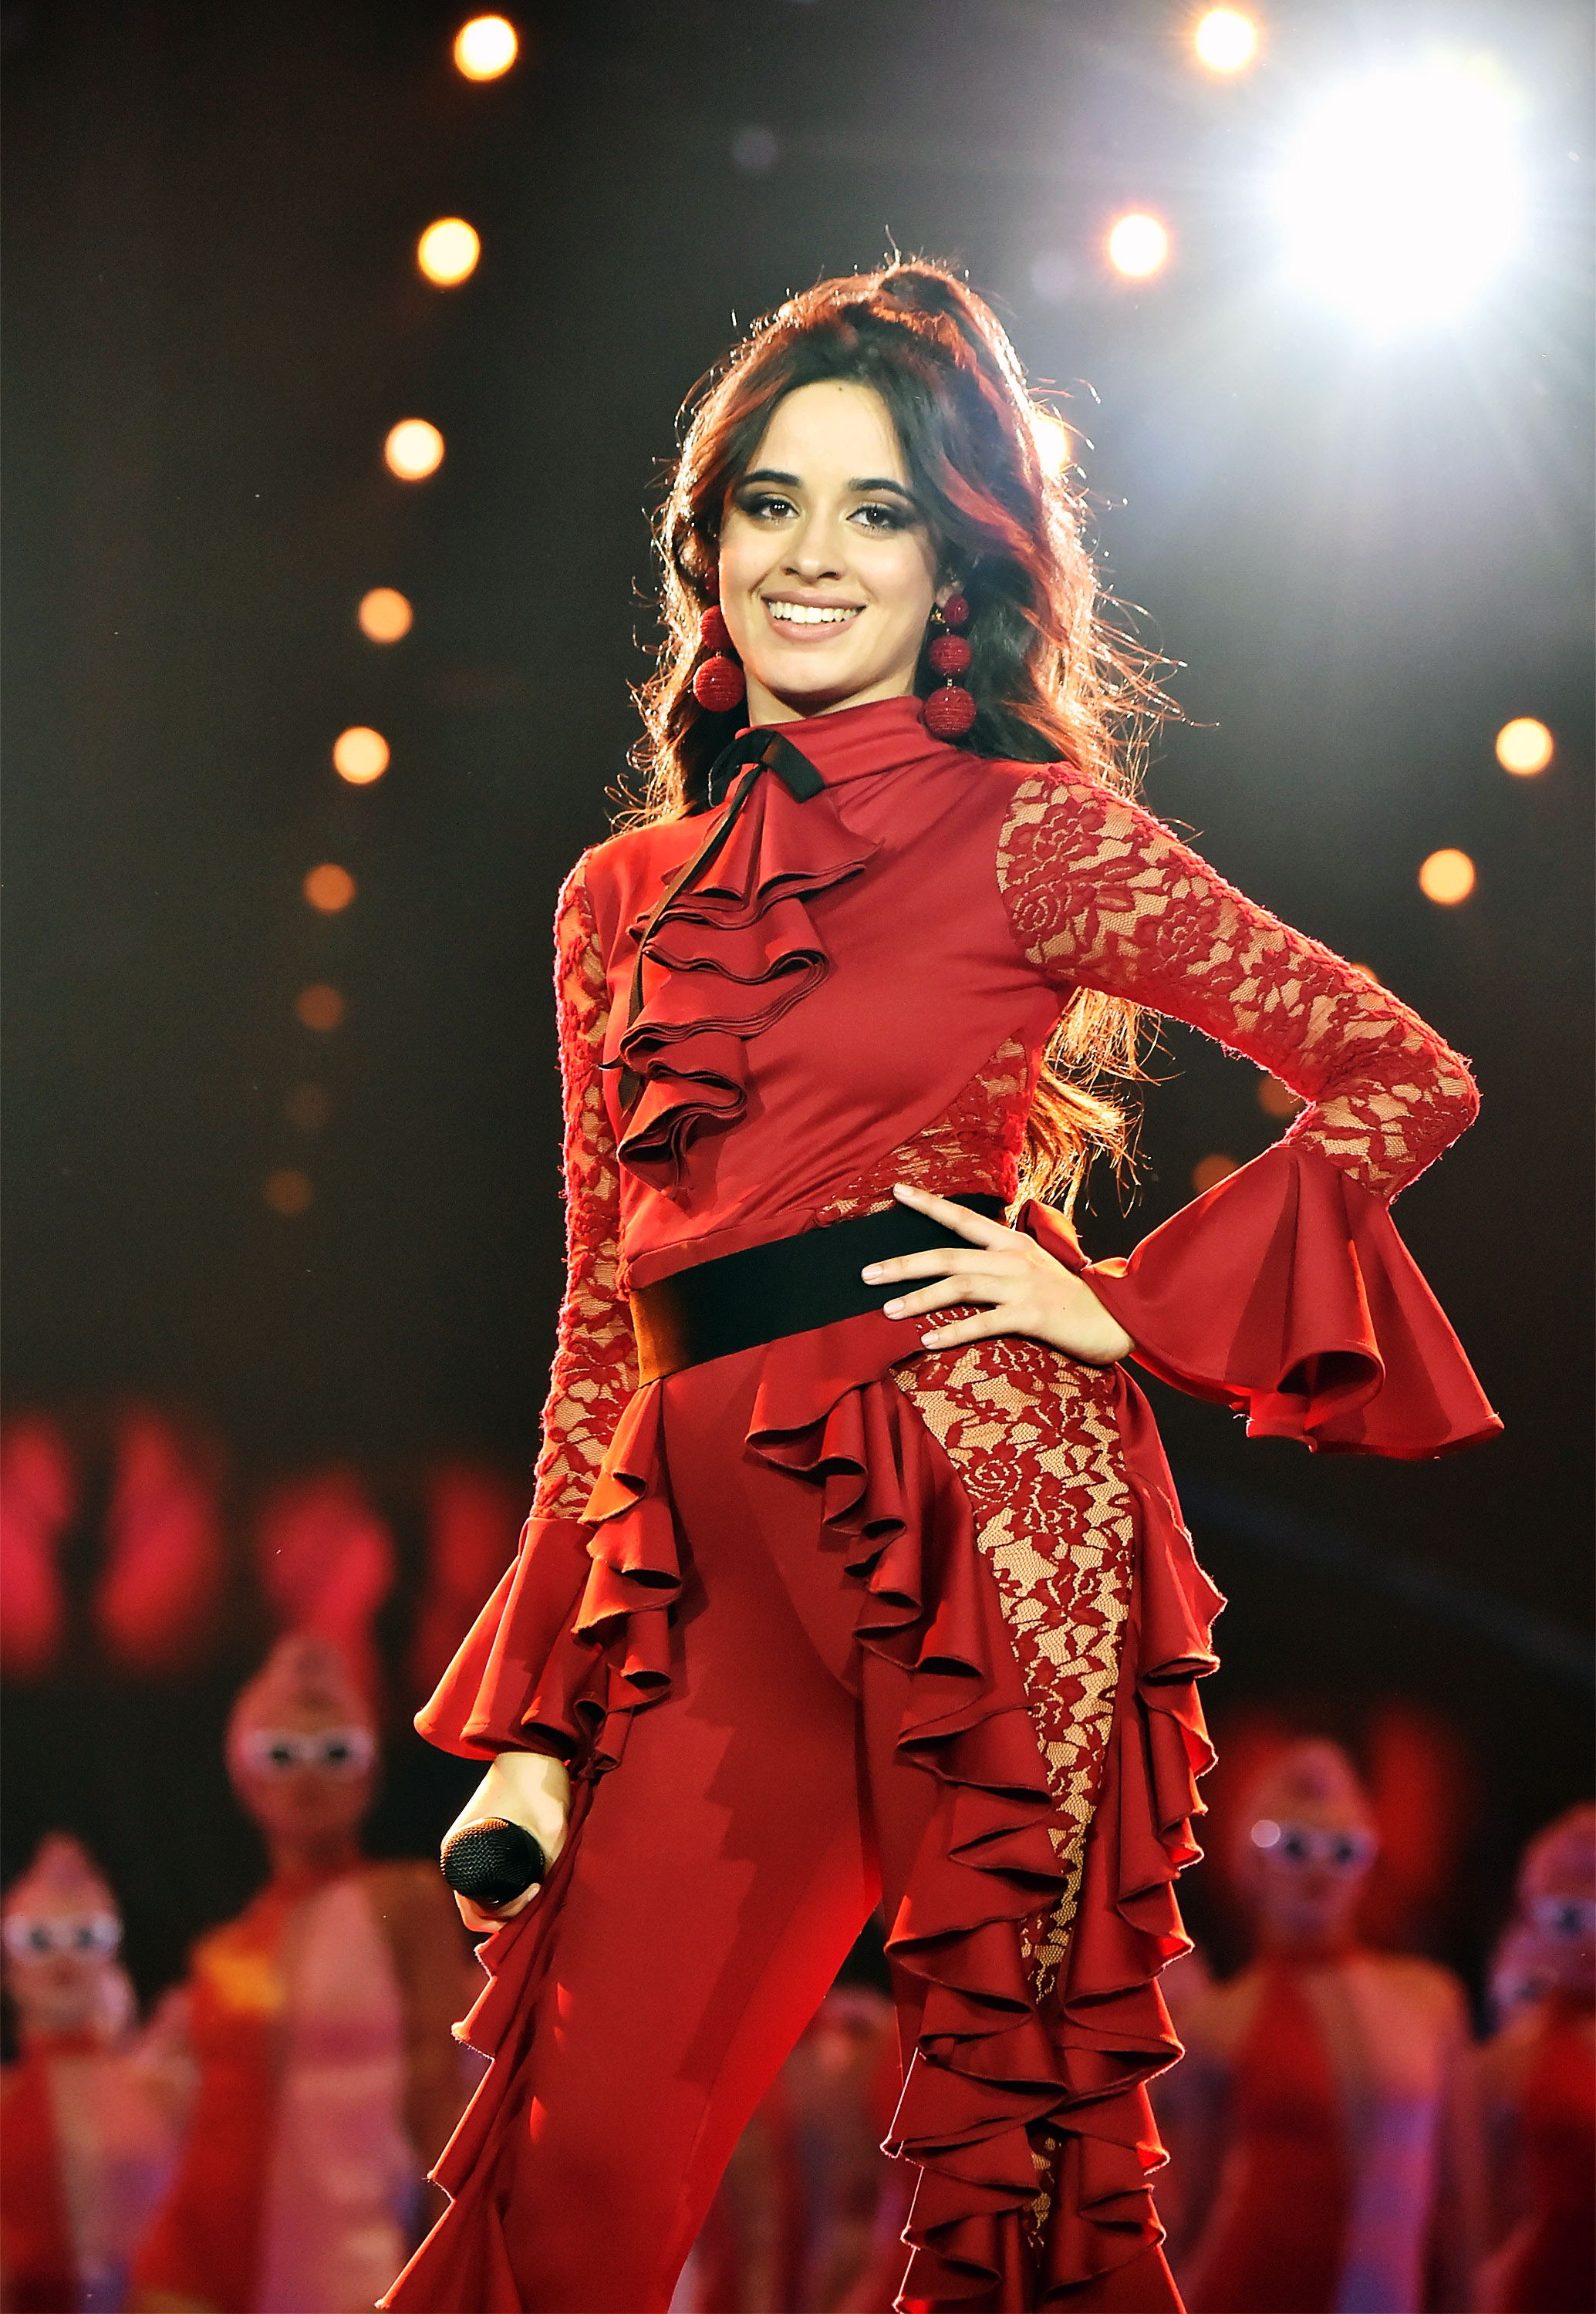 ca6a79a2477289 Camila Cabello performs on stage during the MTV EMAs 2017 held at The SSE  Arena, Wembley on November 12, 2017 in London, England.